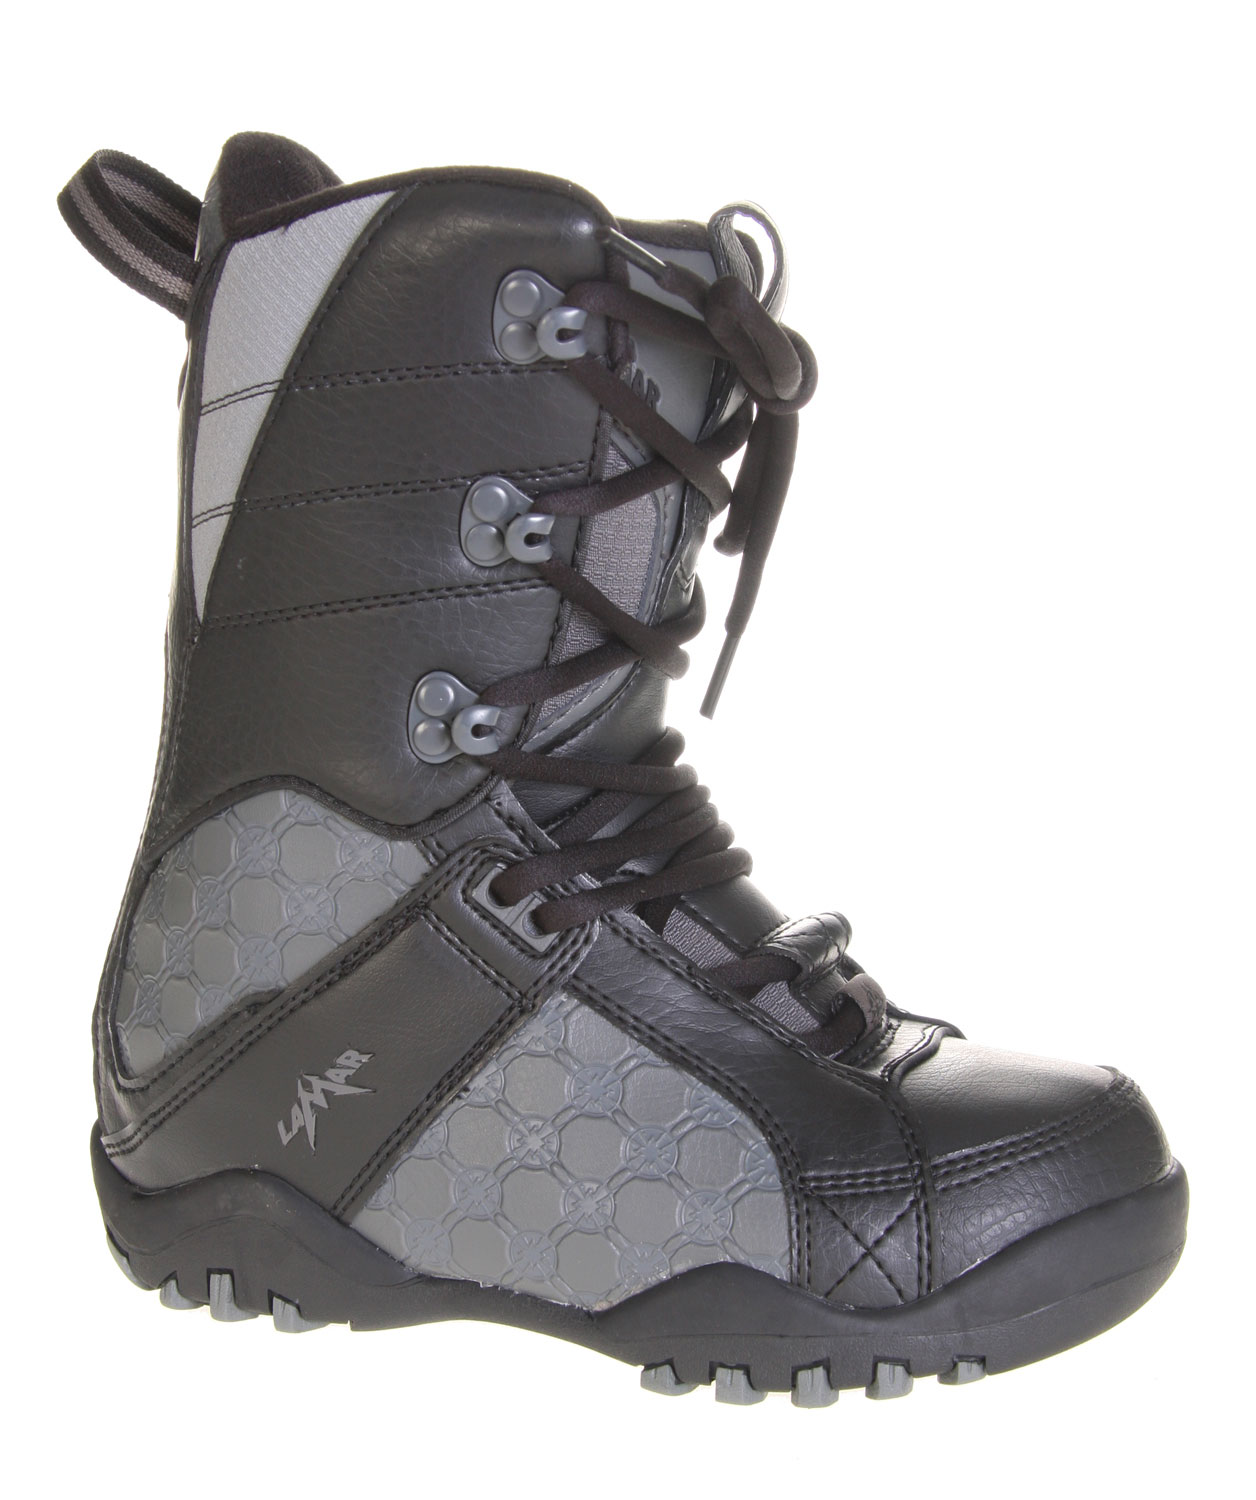 Snowboard The Lamar Justice Snowboard Boots are as heavy-duty in their dedication to getting the job done as their name makes them sound. With the inclusion of Low Profile dual density durability coupled with a built in liner system, these boots are guaranteed to stand up to the harshest weather conditions on both the interior and the exterior. Soft touch lacing and a flex zone tongue also allow the wearer an easy time of lacing up the boots and getting ready to go.Key Features of The Lamar Justice Youth Boy's Snowboard Boots: NEW Built in Liner System NEW Low Profile Dual Density Durable Soft Touch Lacing Tongue Gusset with Micro Injected Pull Tab Flex Zone Tongue NEW Upgraded Materials - $54.95